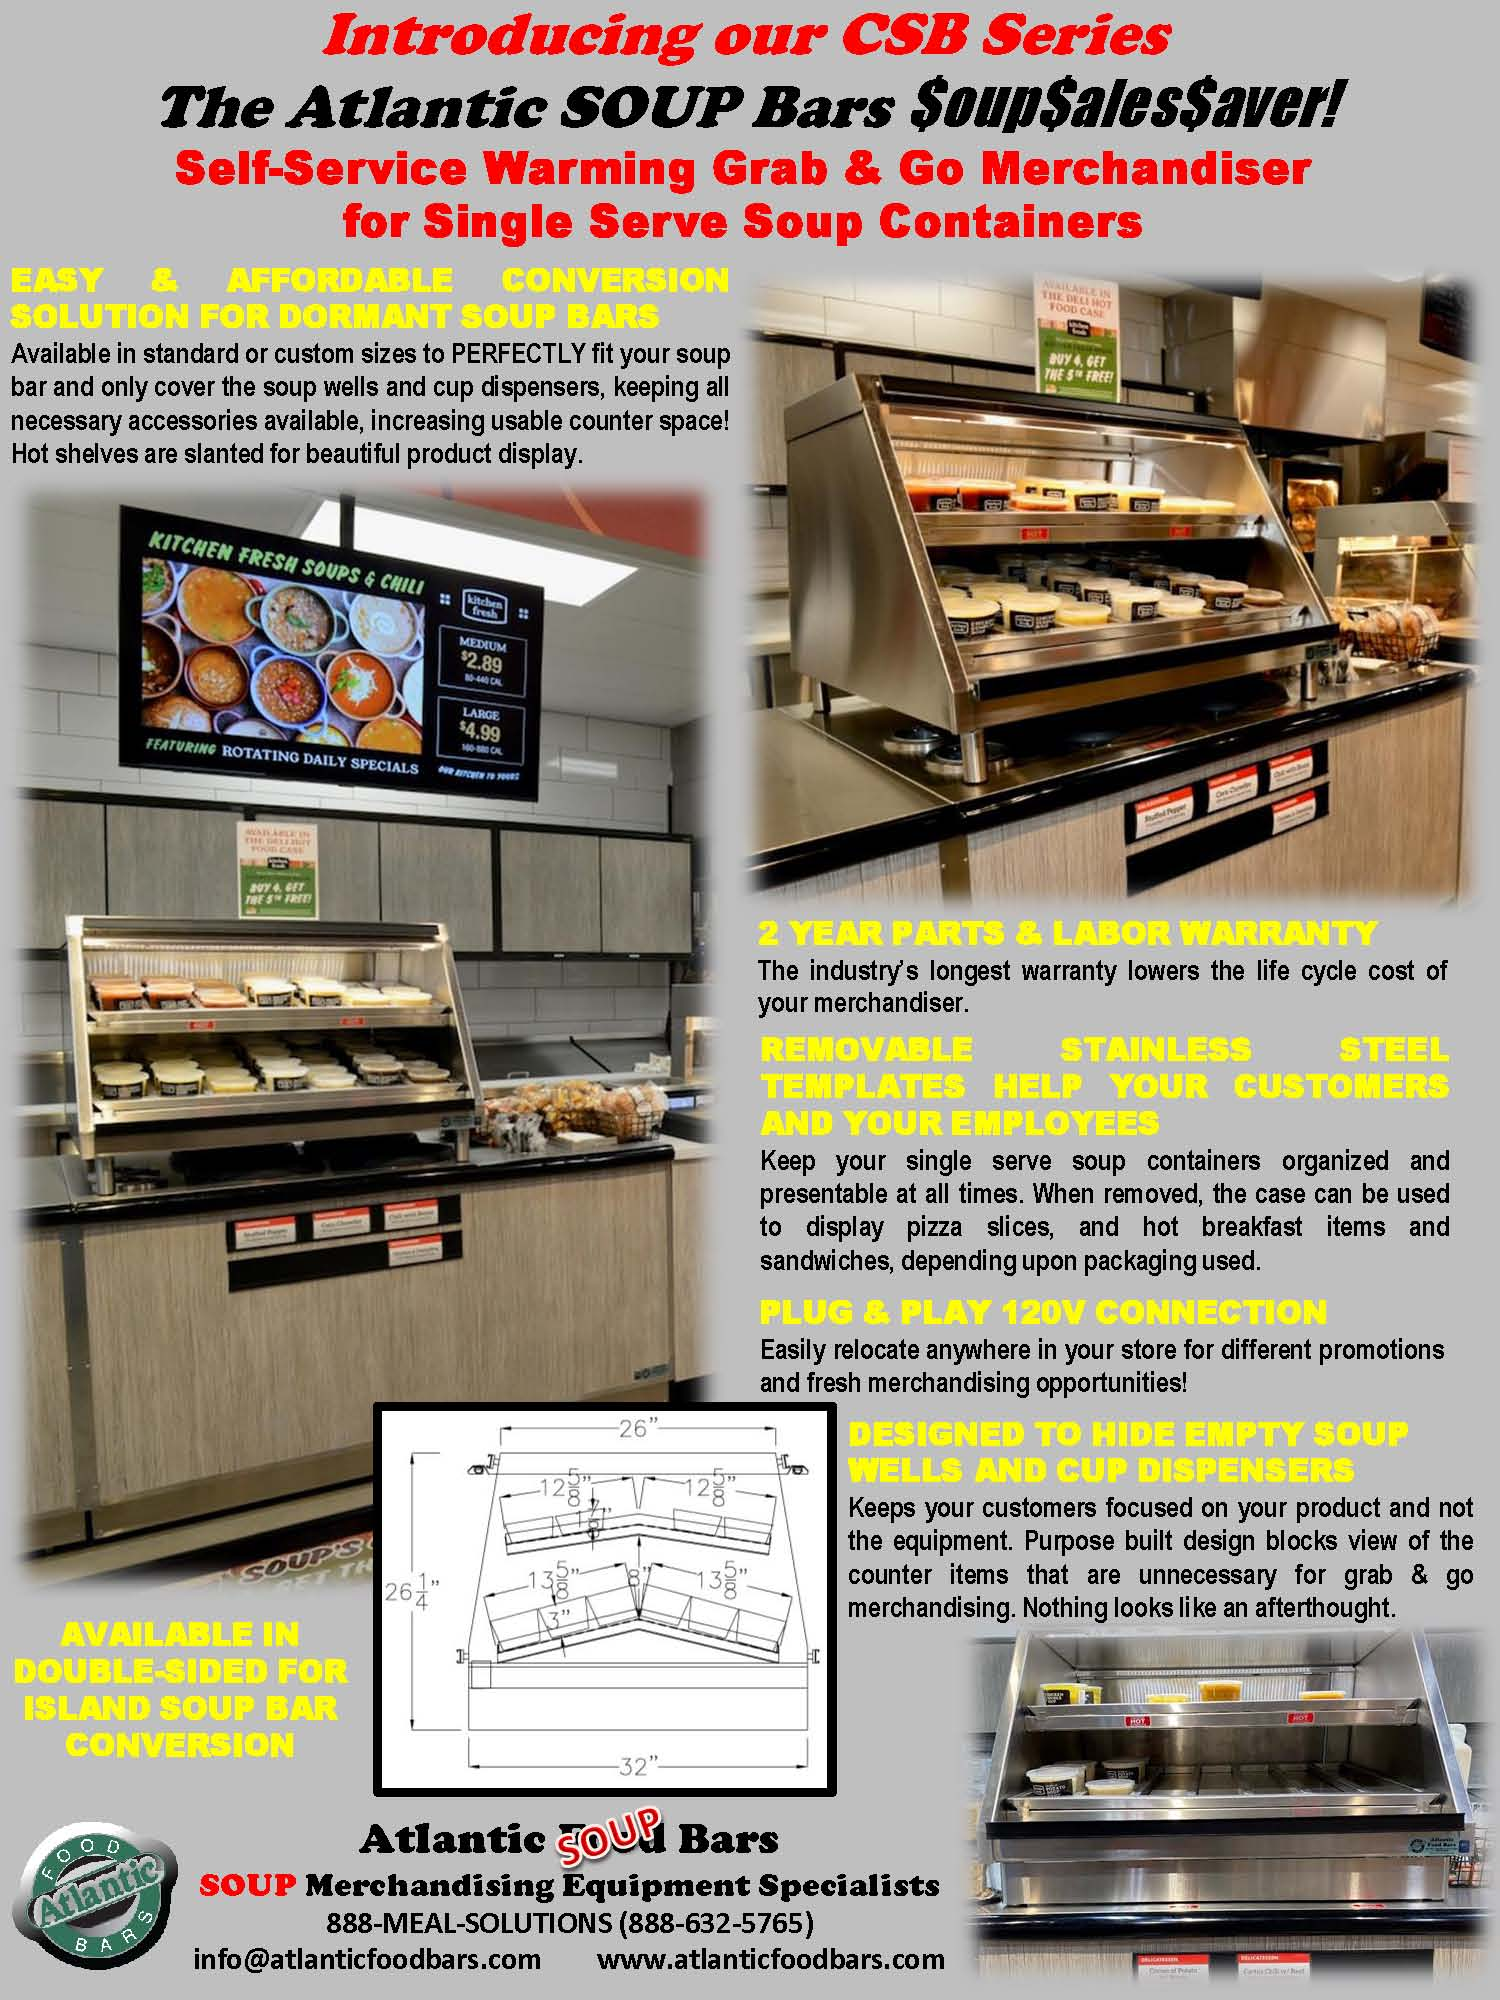 Before and After - CSB Series Hot Soup Saver for Conversion to Grab and Go Soup Merchandising Presentation for SOUP MANUFACTURERS 12-5-20_Page_1